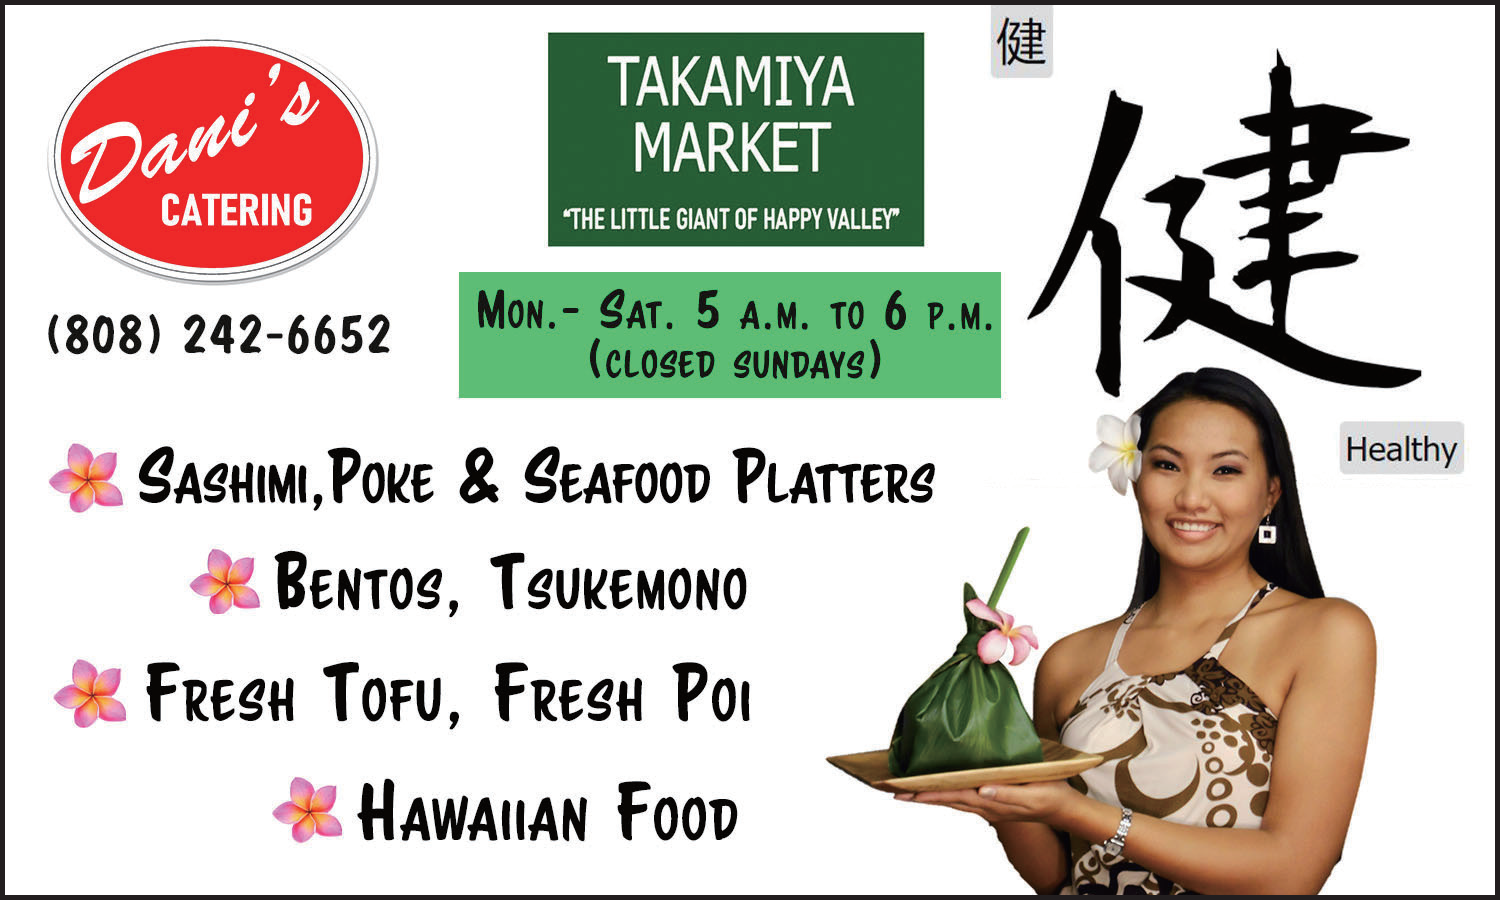 Takamiya Market the little giant of happy valley